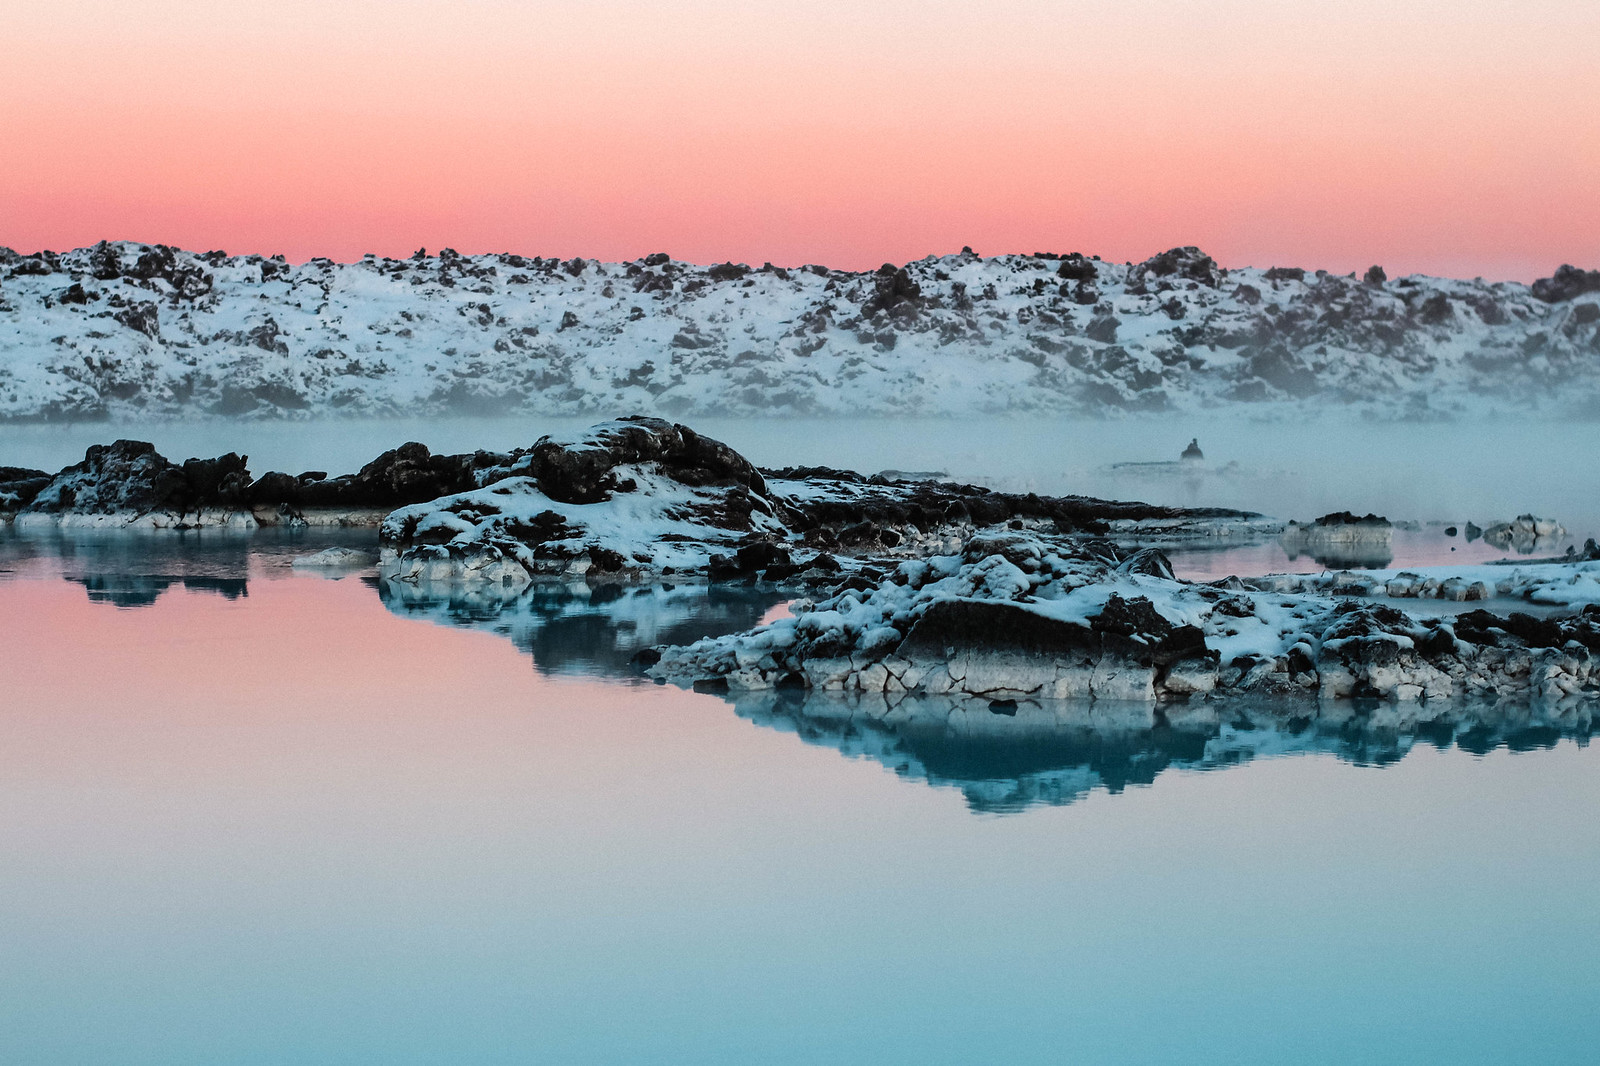 Blue Lagoon Iceland Grindavík Geothermal Spa travel blogger UK The Little Things